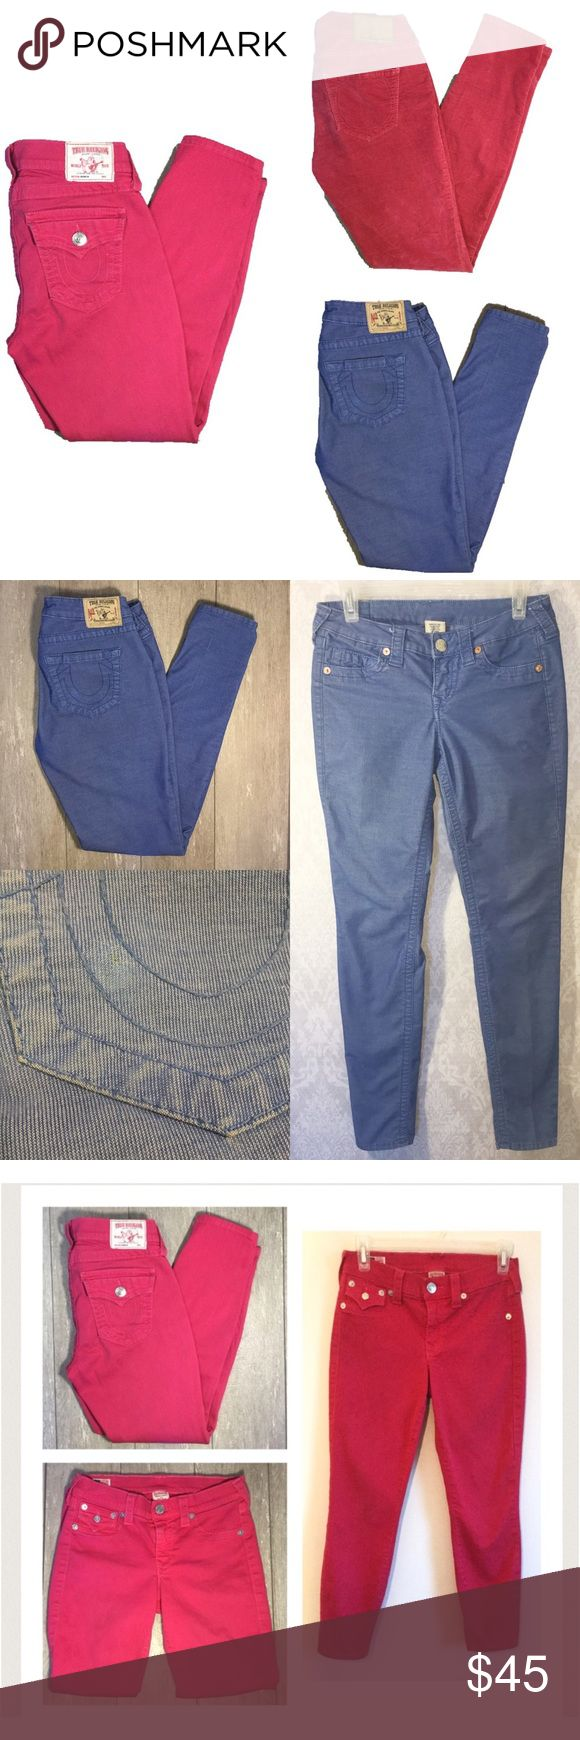 """❗️REDUCED❗️True Religion ALL FOR $41 The blue are corduroy. Size 27, Inseam 30"""". Minor flaw otherwise in great condition. The Pink are capris.  Size 27, Inseam 25"""". Minor flaw, otherwise great condition. The red are of a soft material. They feel like velvet. Size 27, Inseam 29"""". The red are in used condition but they still have some wear to them.  Offers welcome True Religion Jeans"""